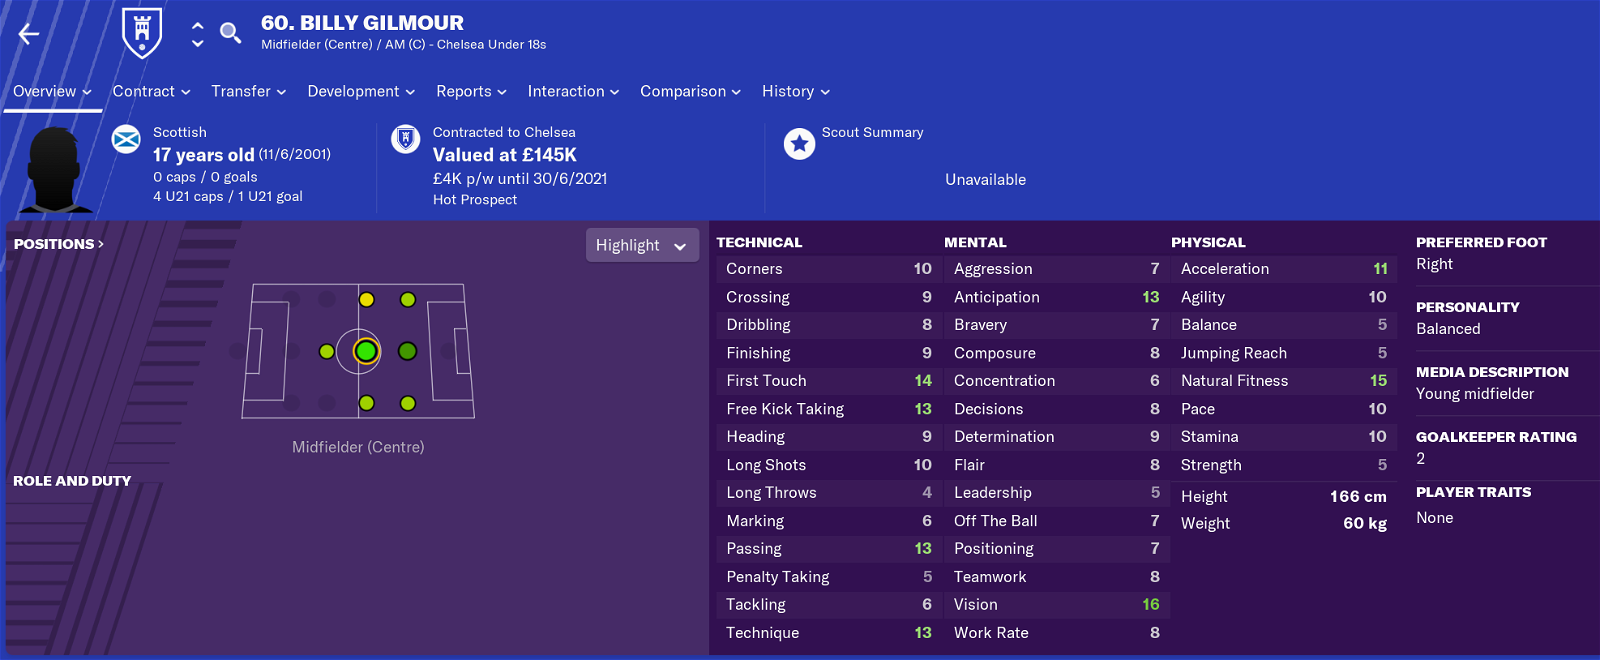 Billy Gilmour FM19